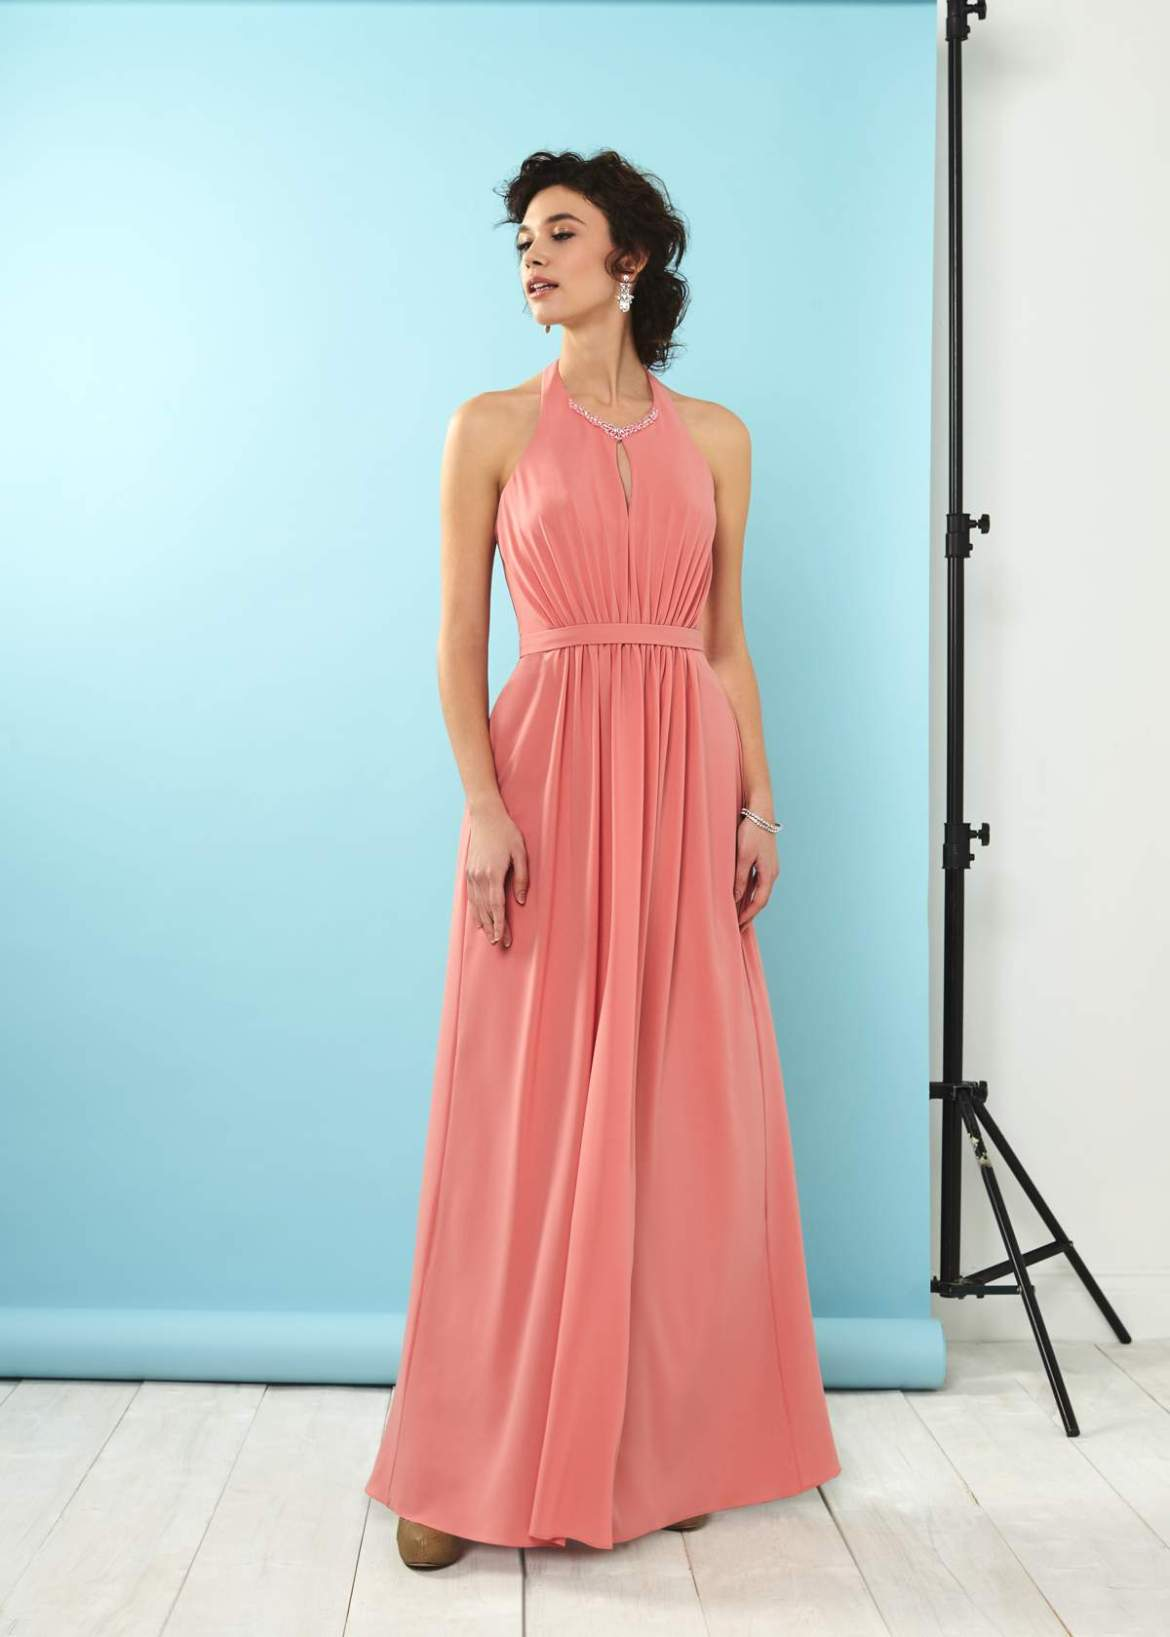 bridesmaids Archives - Find Your Dream Dress